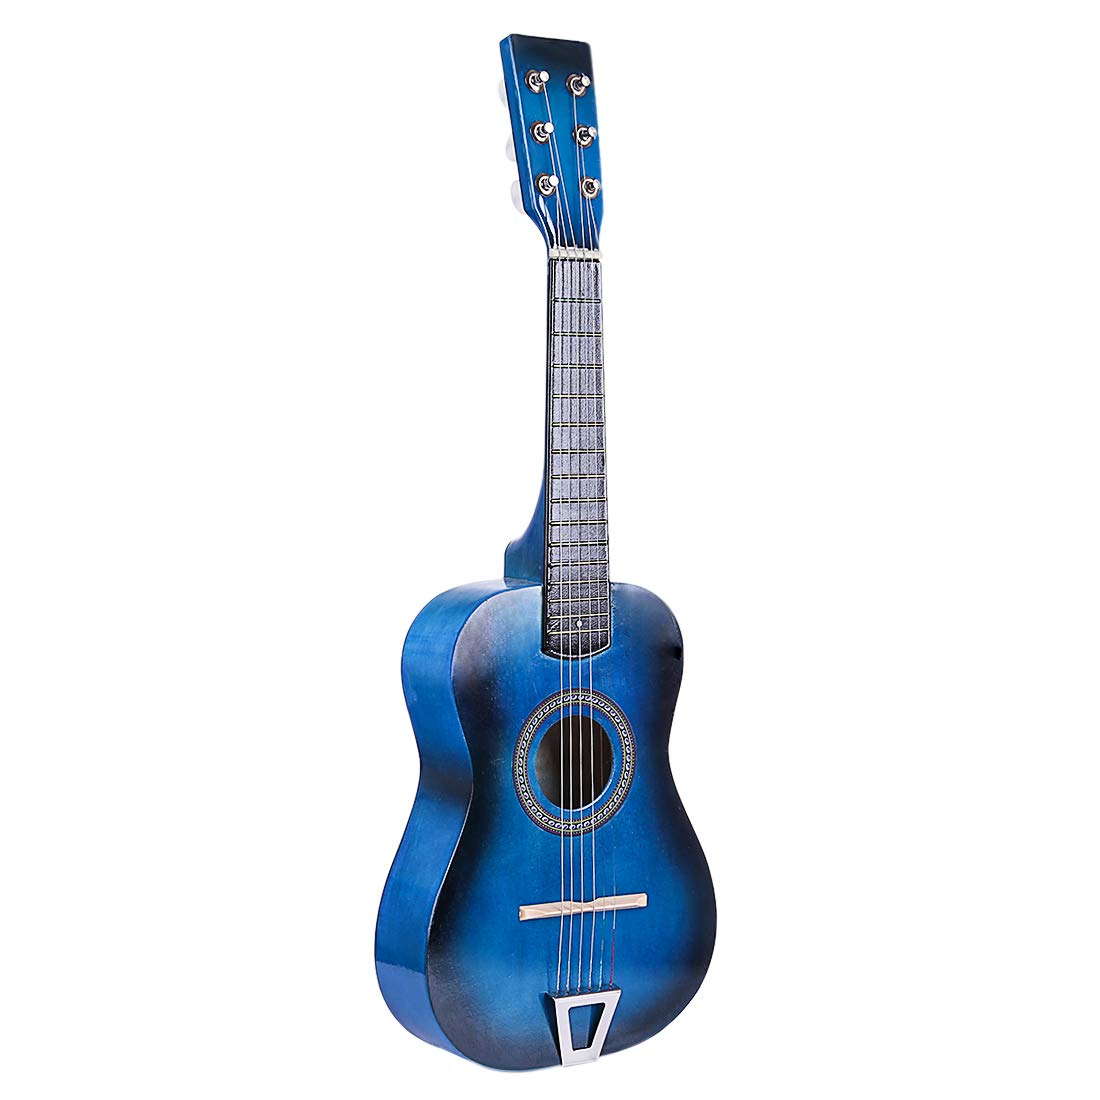 FenglinTech Kids Guitar, 23inch 6 Strings Children Wooden Acoustic Guitar Musical Instrument Toy for Children Beginner - (Blue)